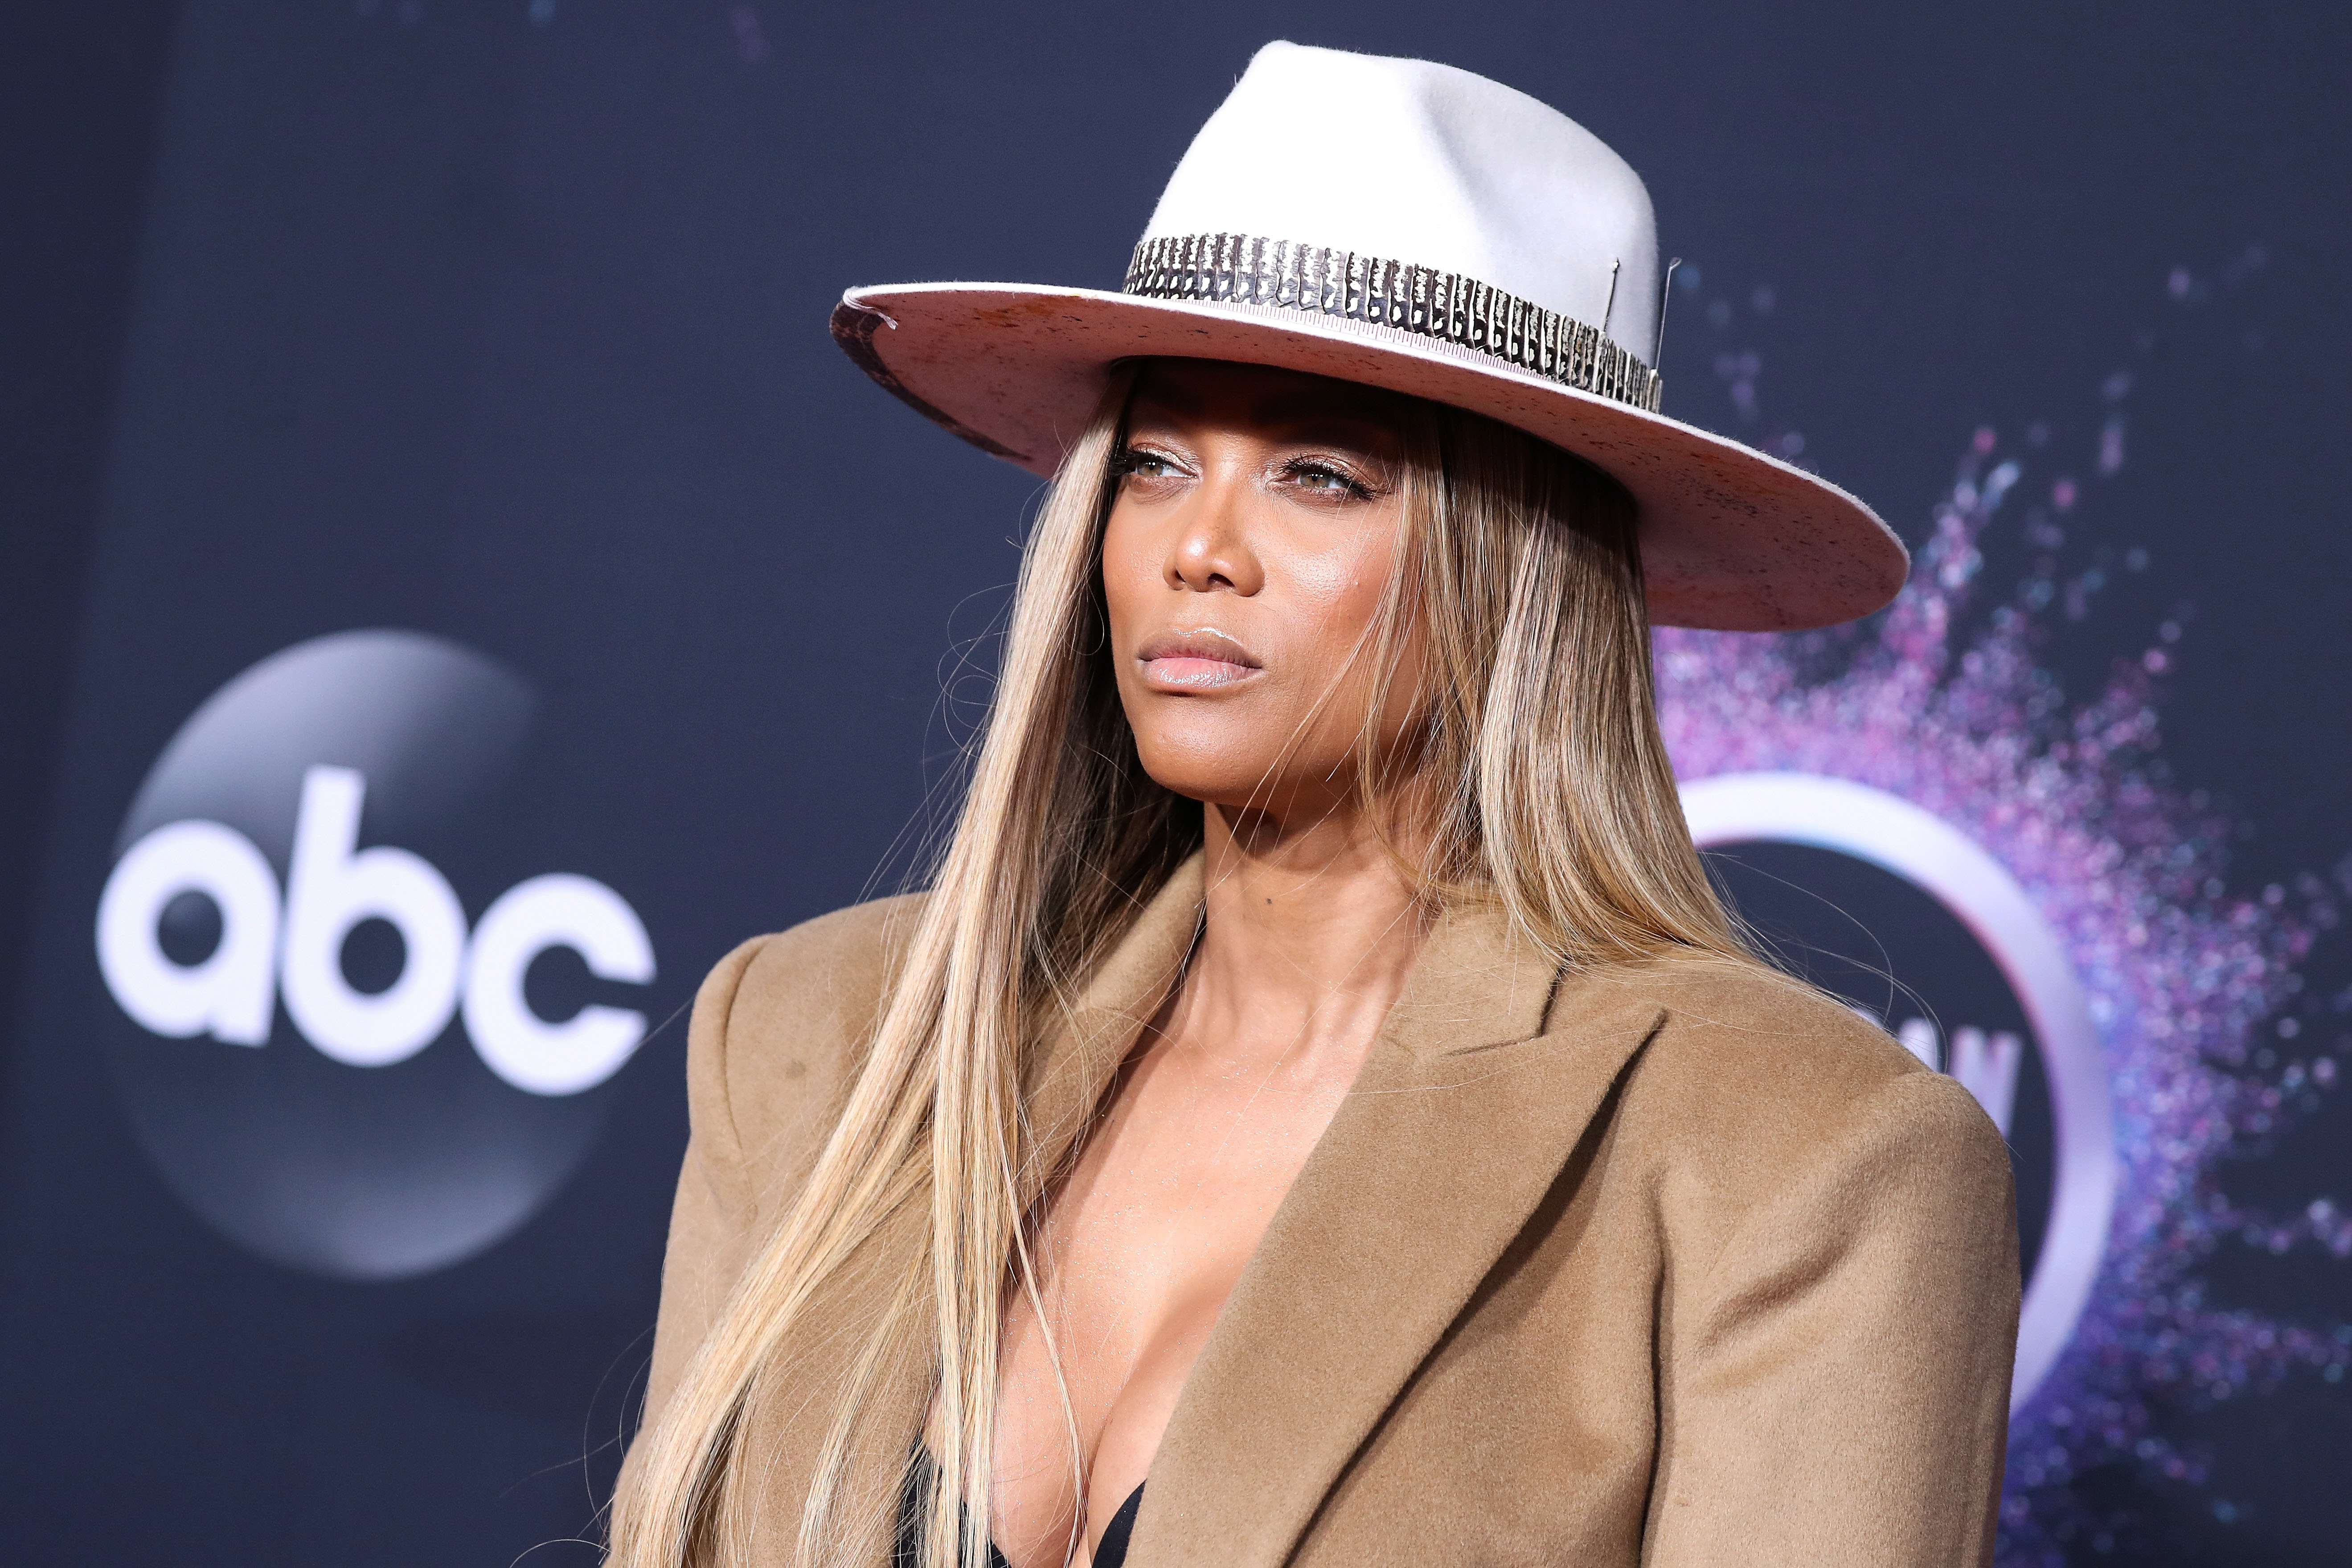 Tyra Banks arrives at the 2019 American Music Awards held at Microsoft Theatre L.A. Live on November 24, 2019 in Los Angeles, California, United States.